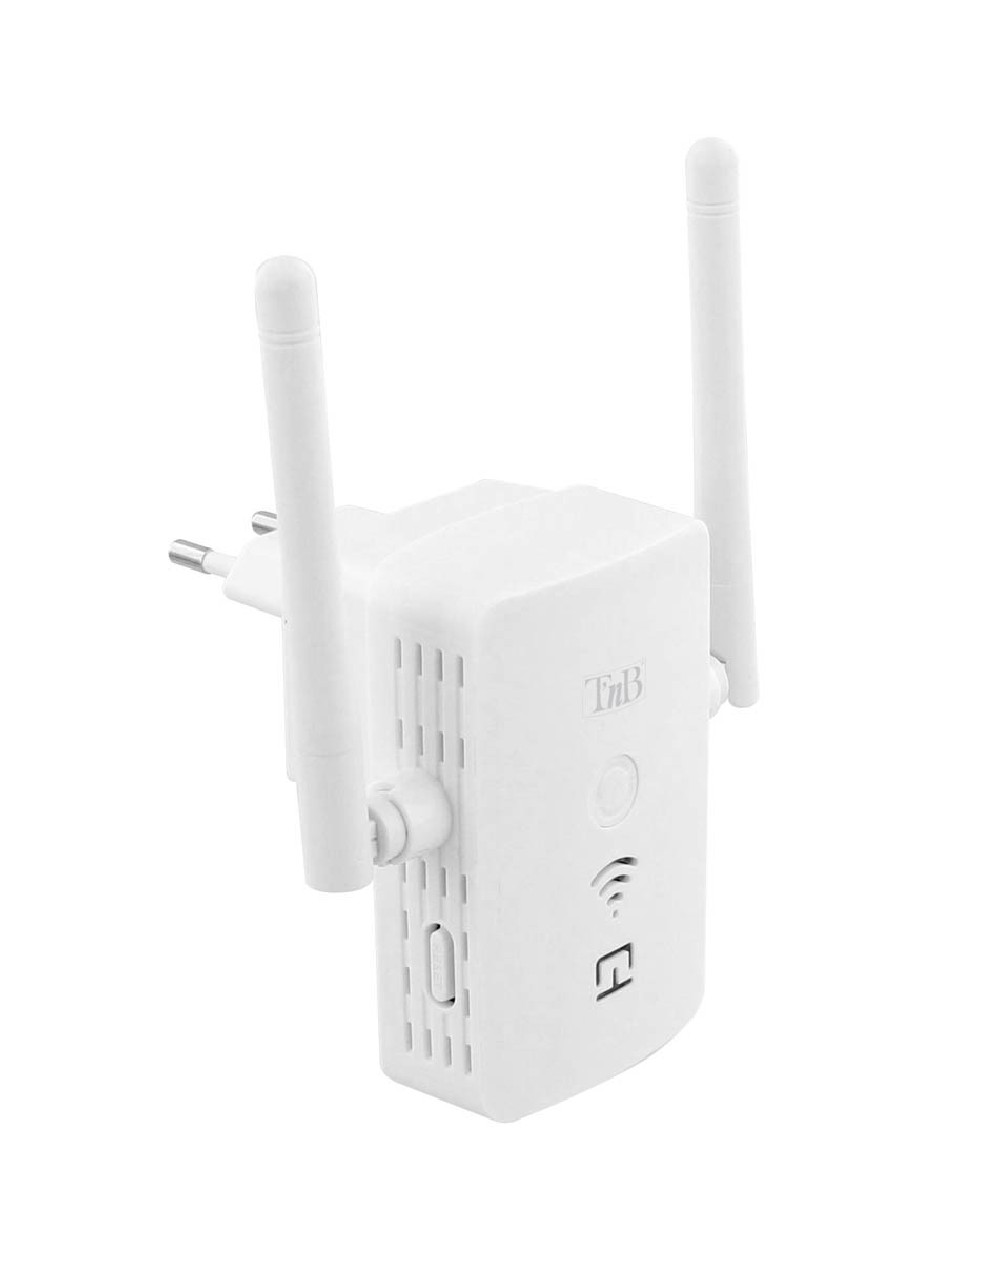 AC WI FI REPEATER 1200 MBPS